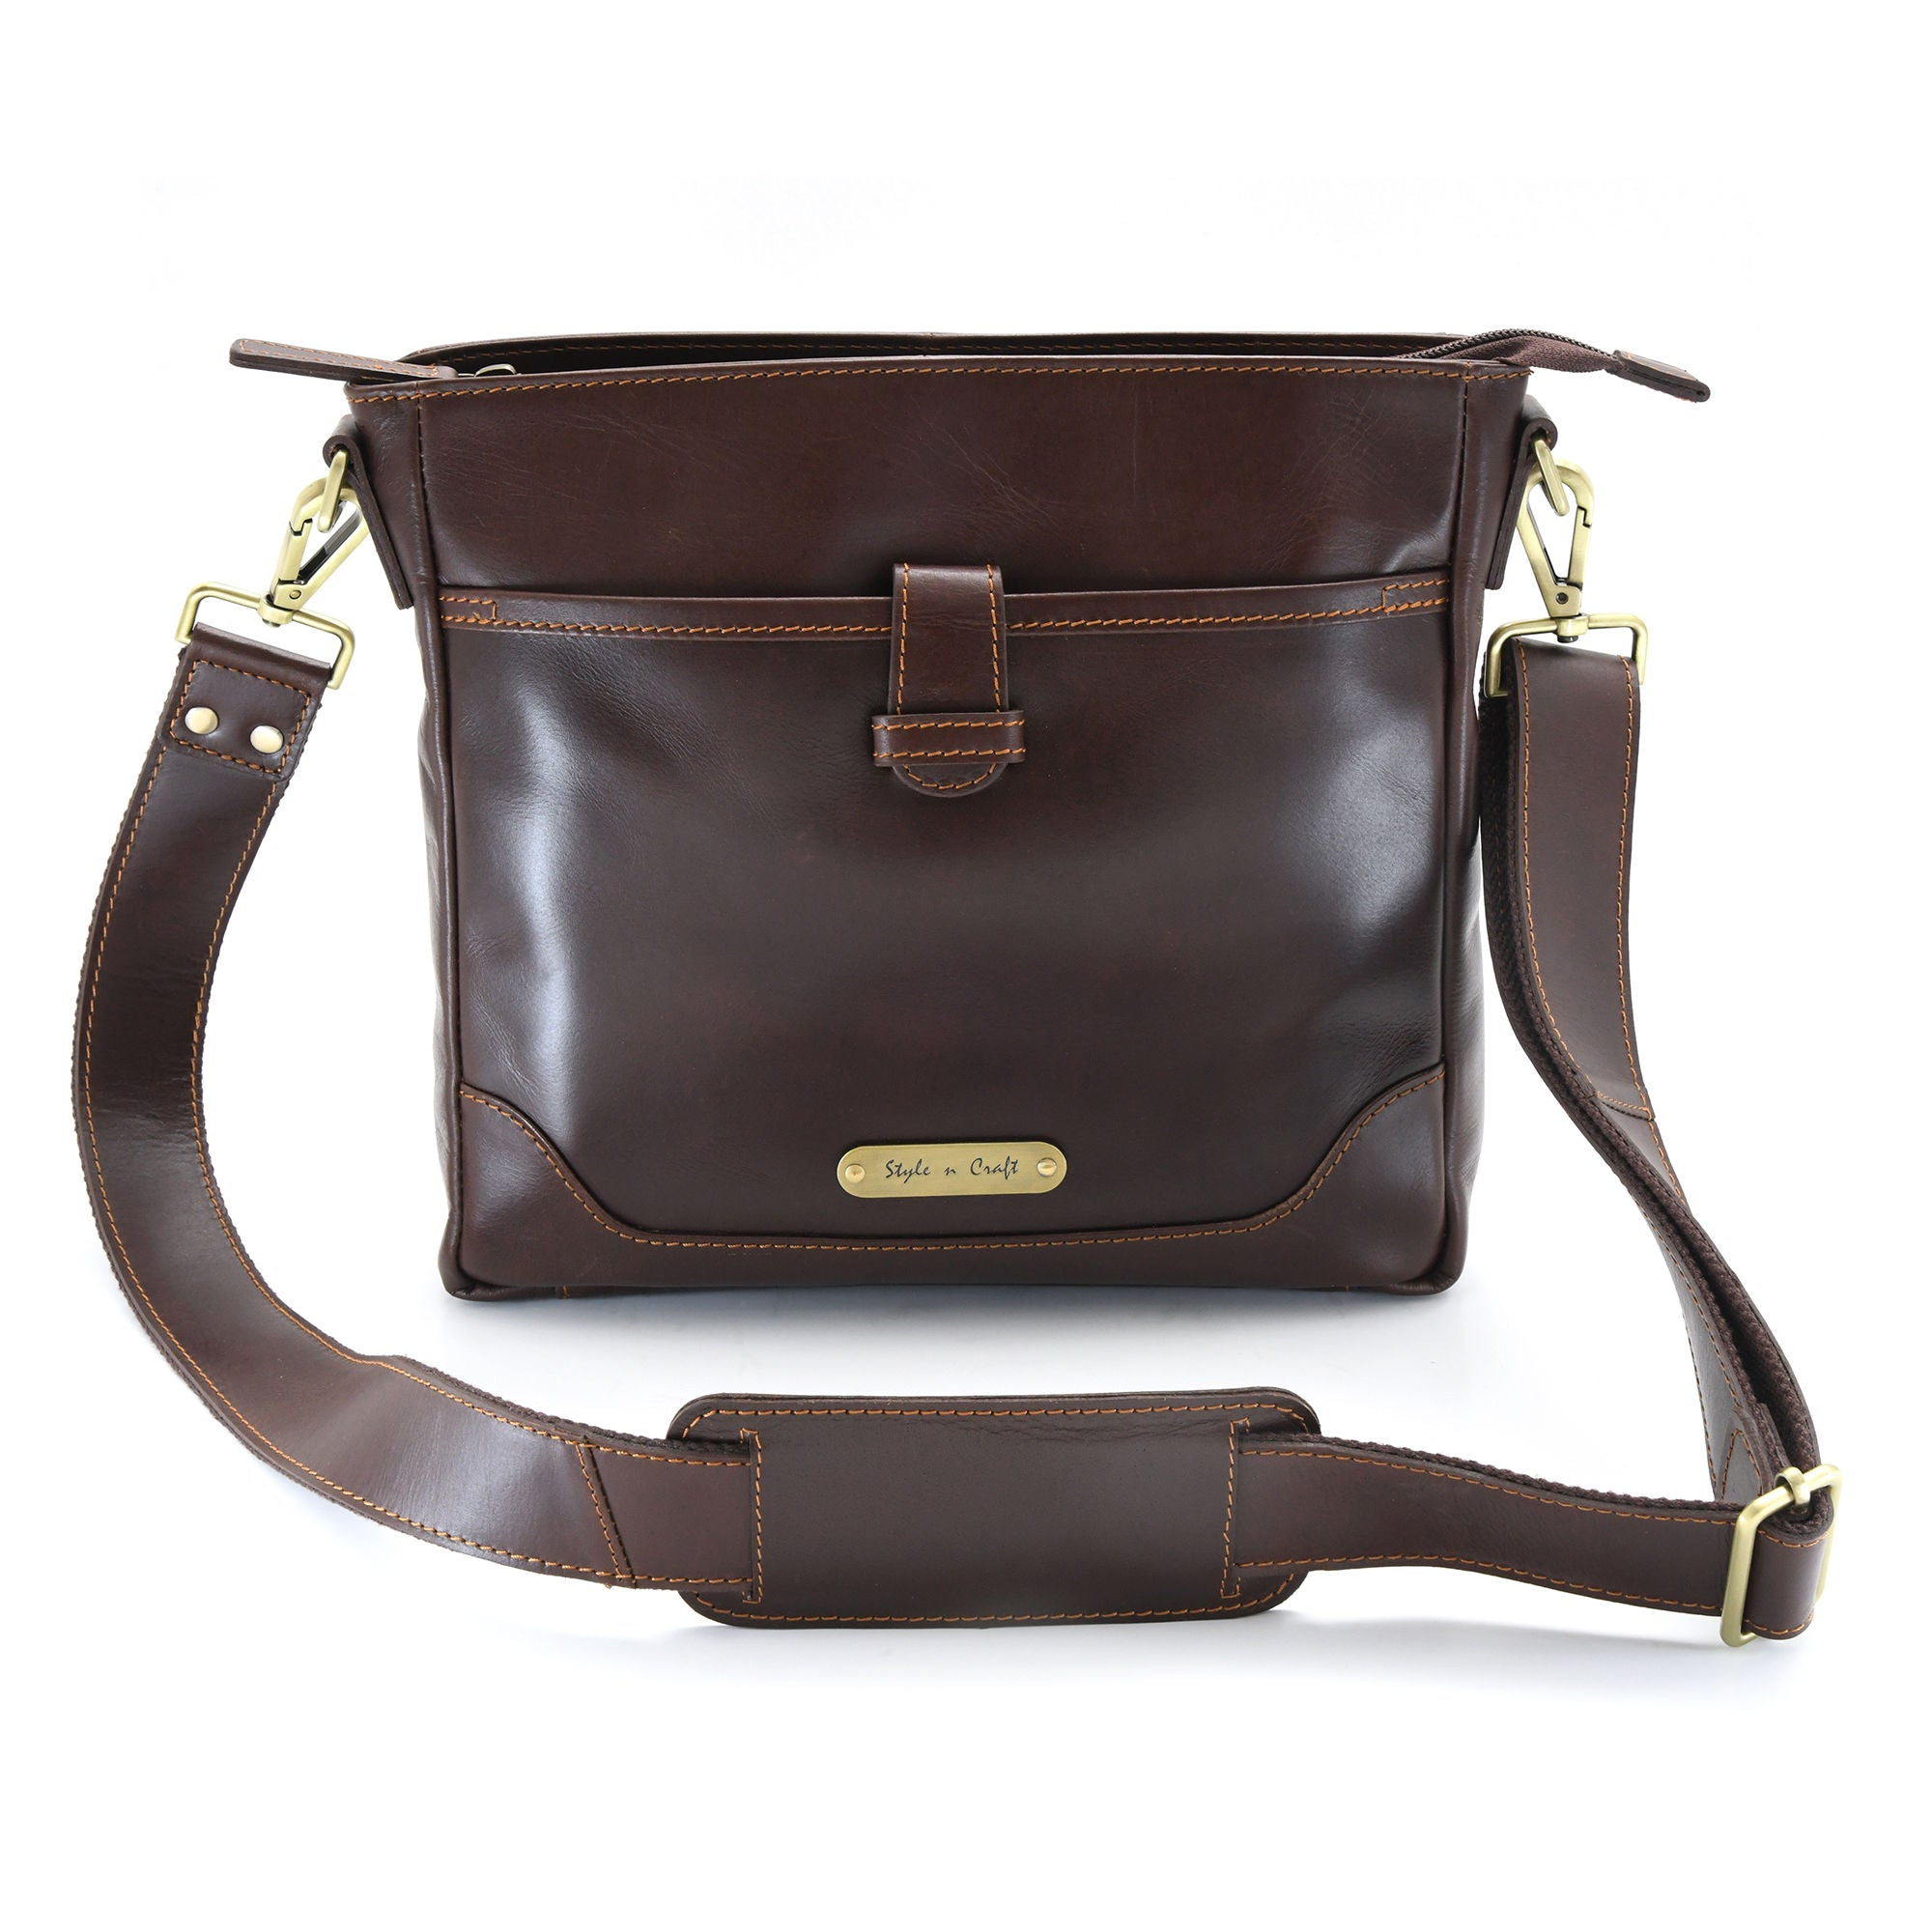 Style n Craft 392001 Cross-body Messenger Bag in Full Grain Dark Brown Leather - Front View